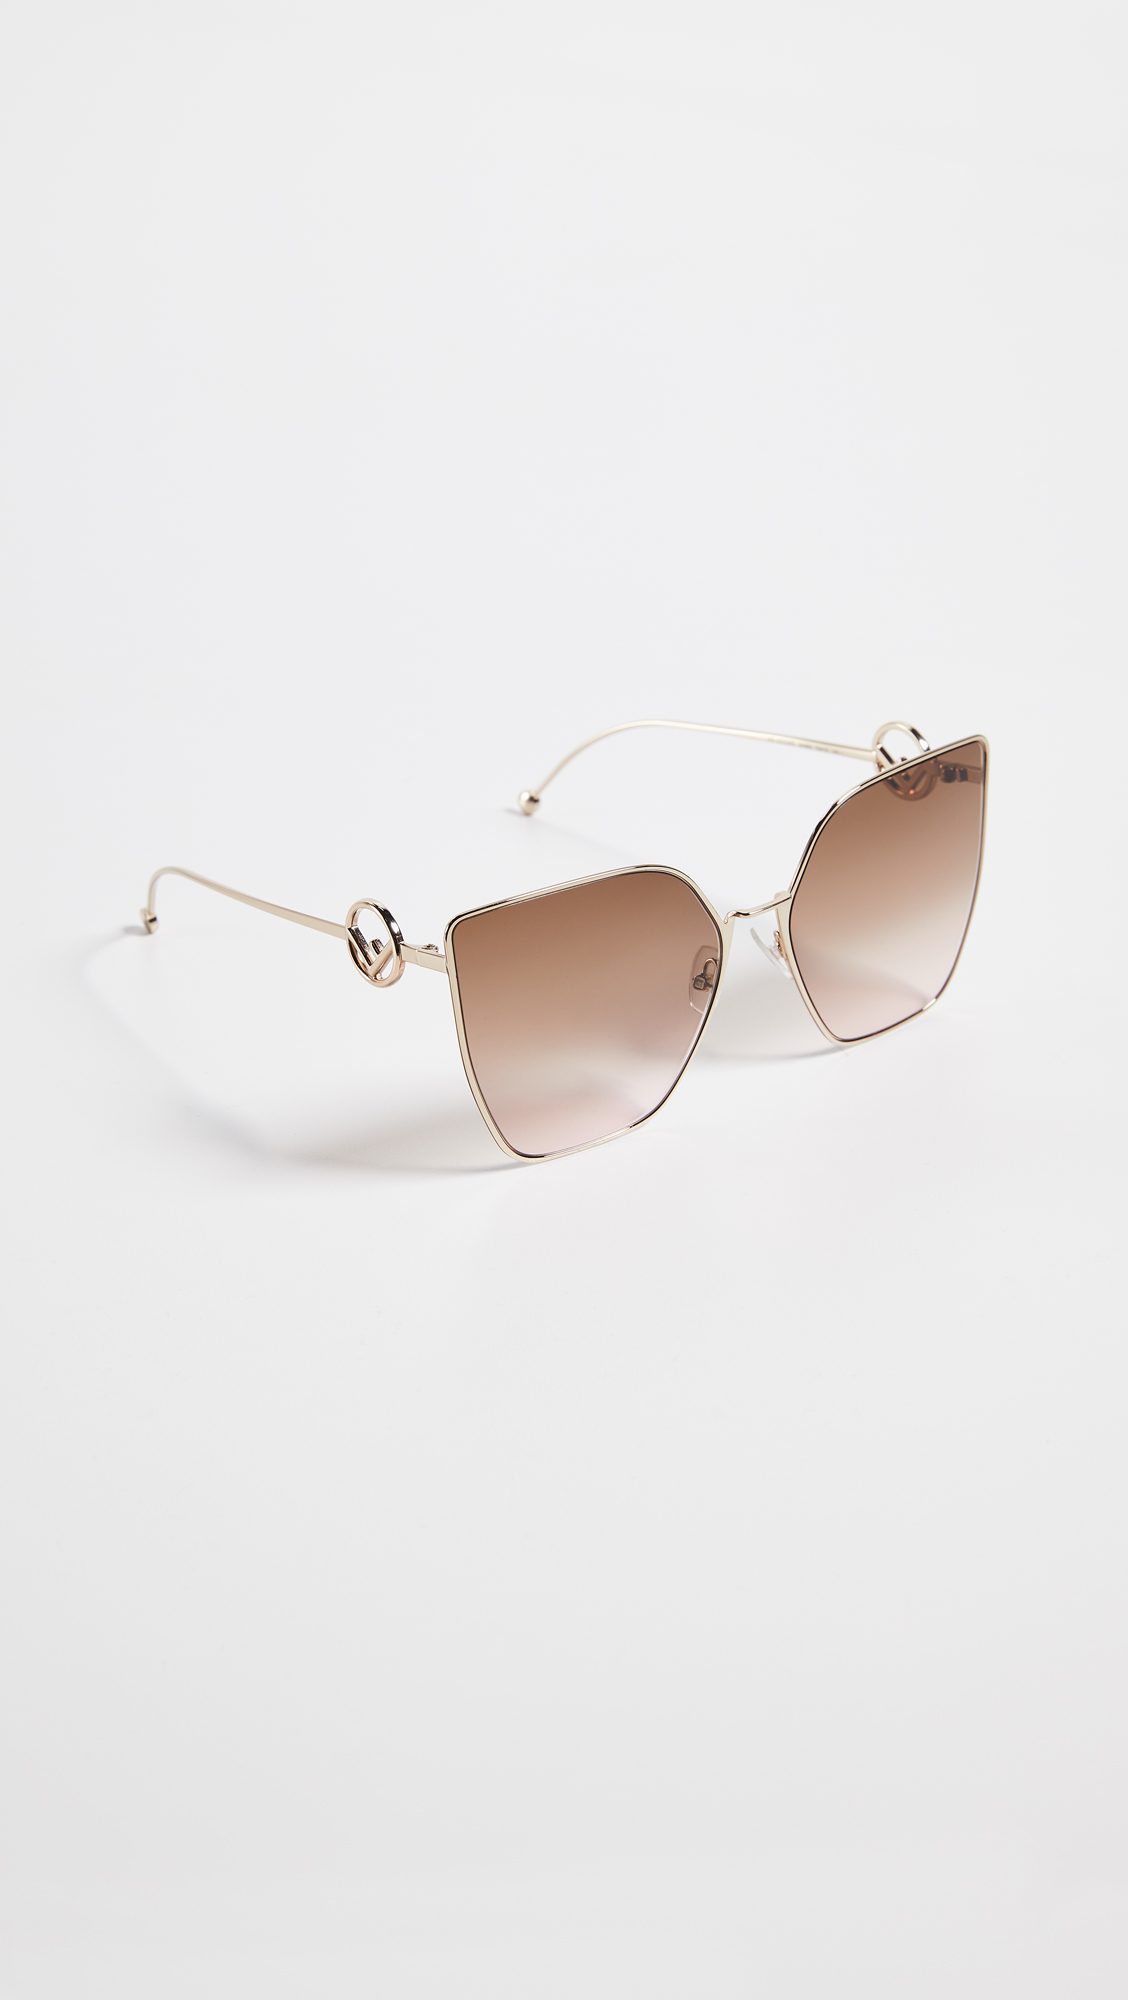 b7b82d6c860 Fendi Oversized Cat Eye Sunglasses